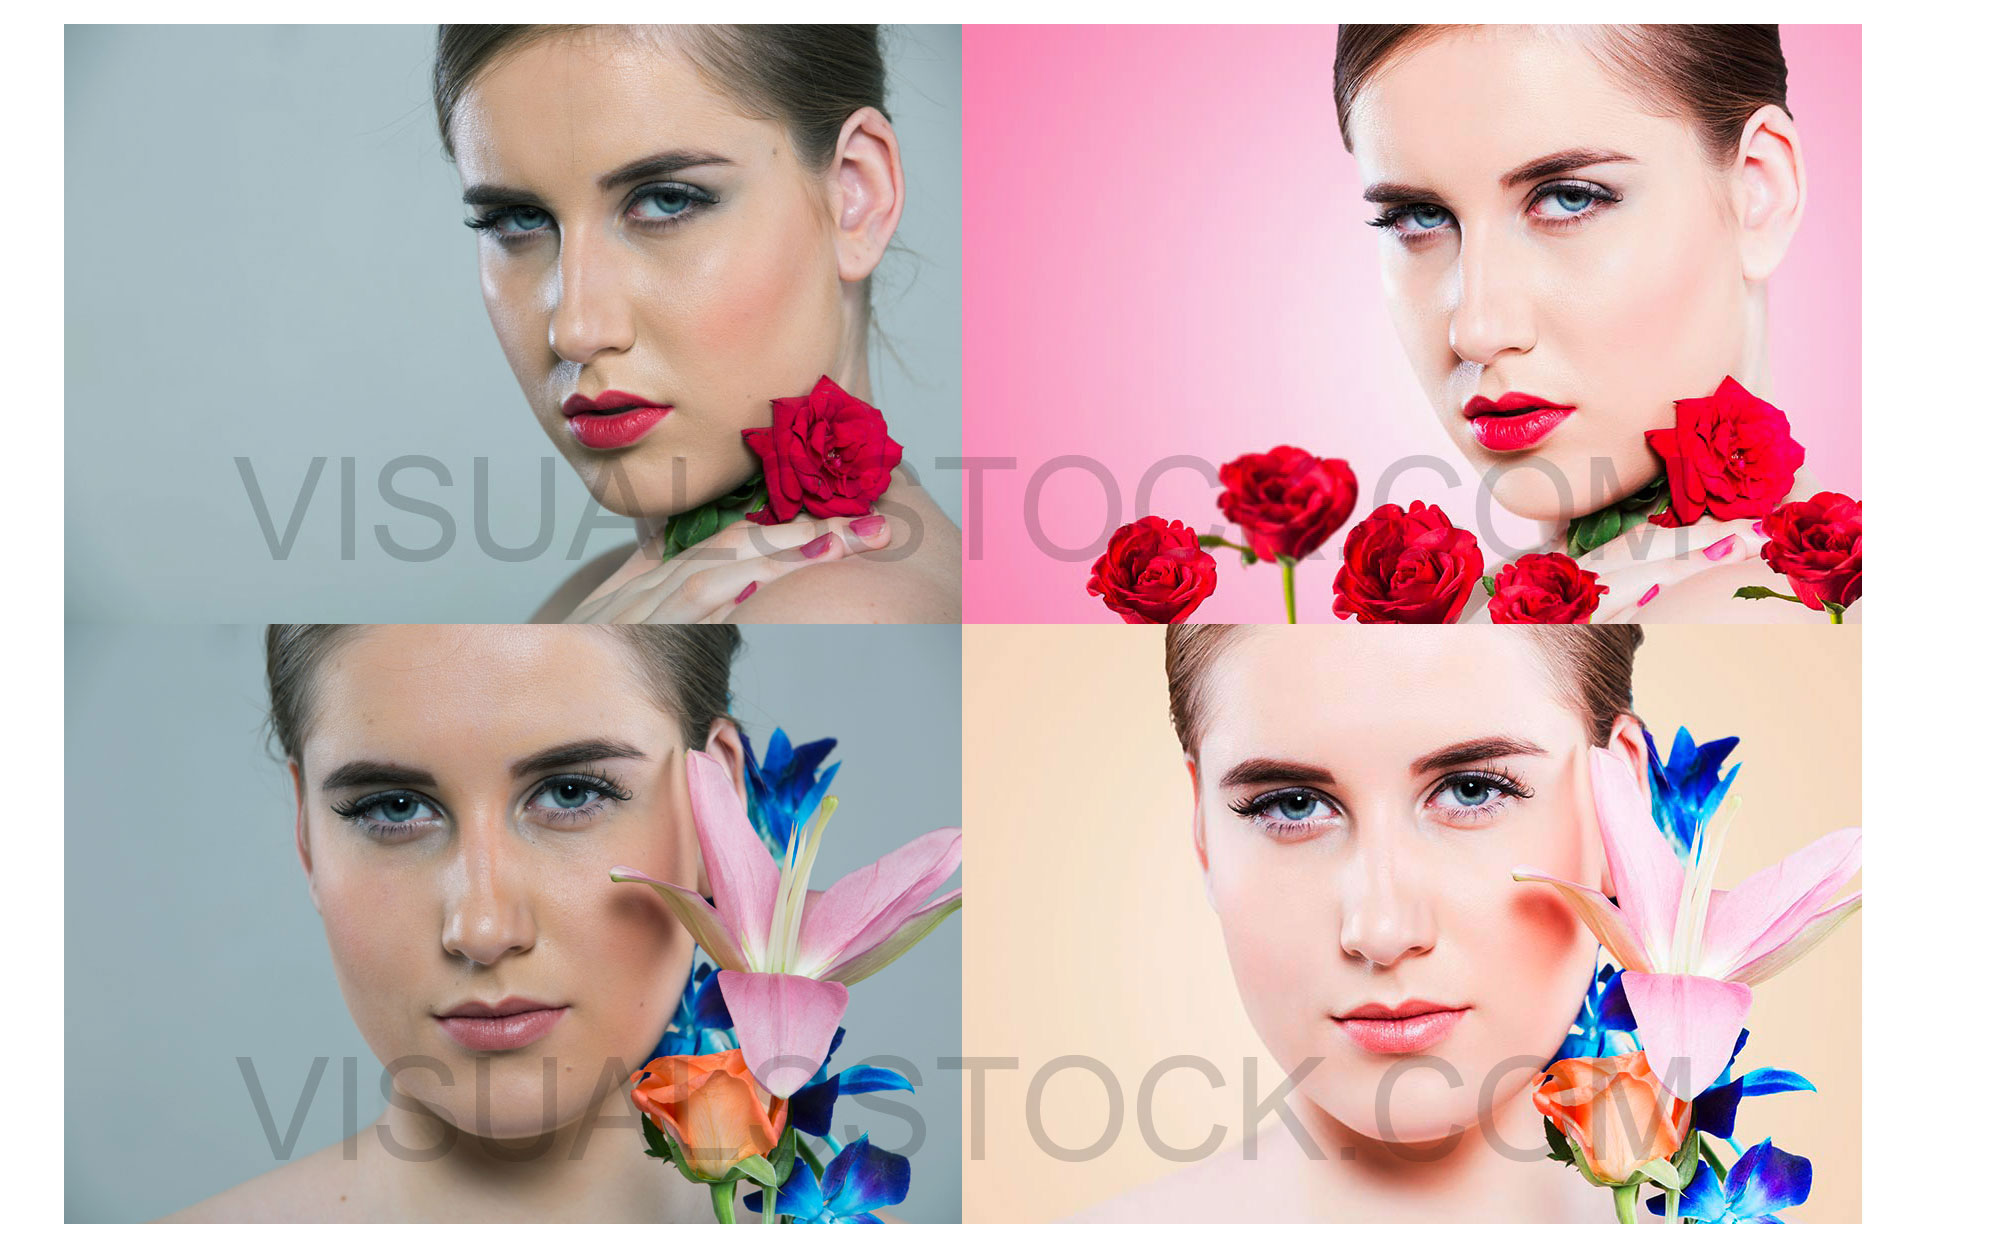 Portrait Photo Retouching Company In Chicago.   We Are A Best Portrait Photo Retouching Service Provider. We Do Portrait Photo Retouching Including, Skin Smooth, Wrinkle Removal, Stray Hair Removal And Many More.   High Quality Portrait Photo Retouching Service Provider In Chicago.